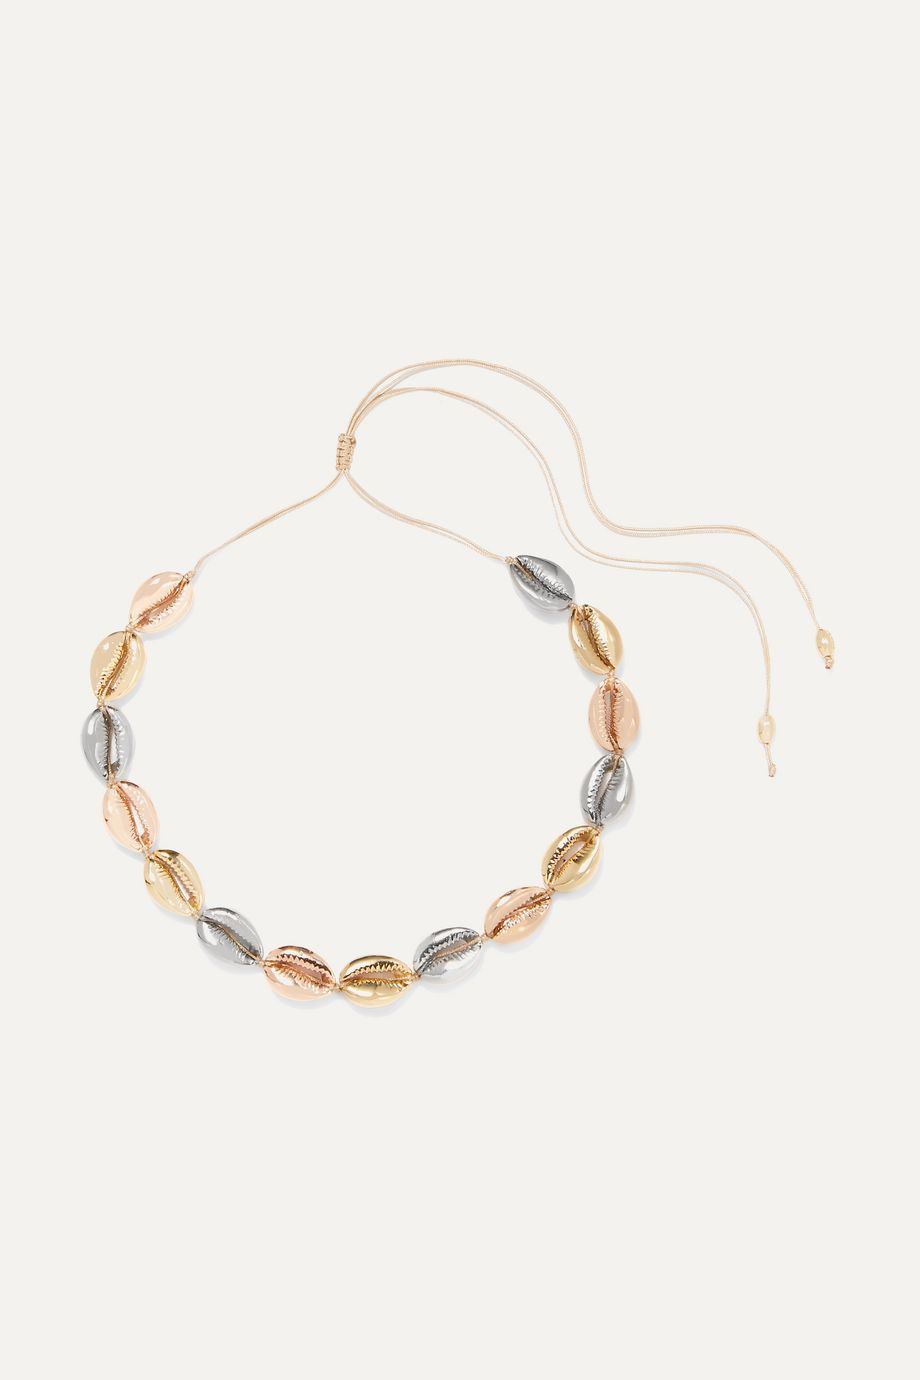 Tohum Large Puka yellow and rose gold and silver-plated necklace